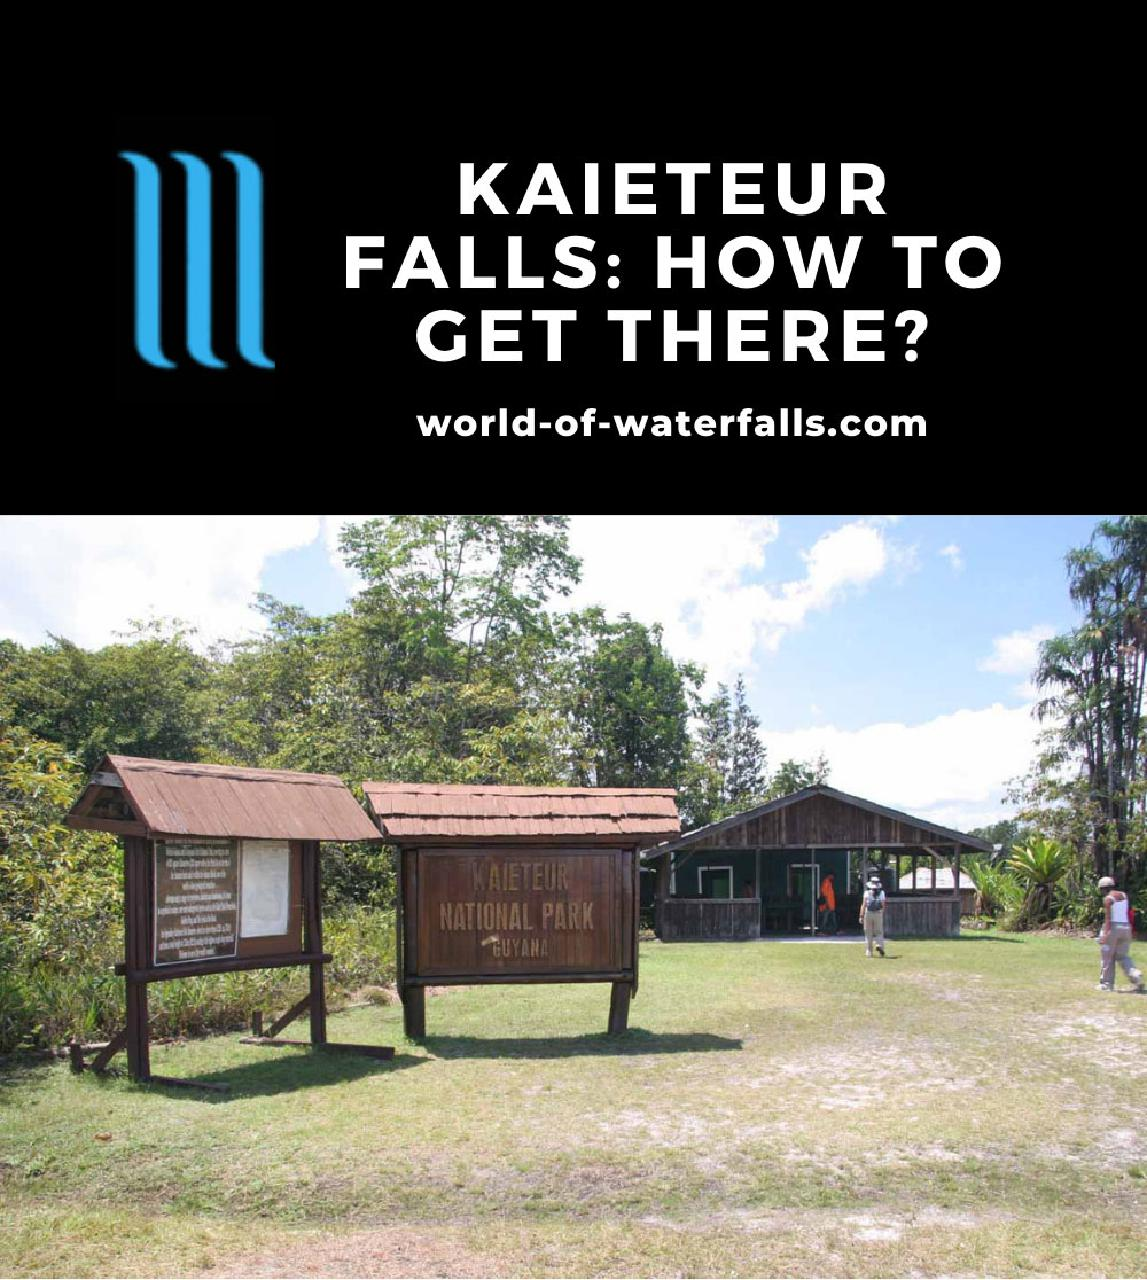 Kaieteur Falls: How to Get There?